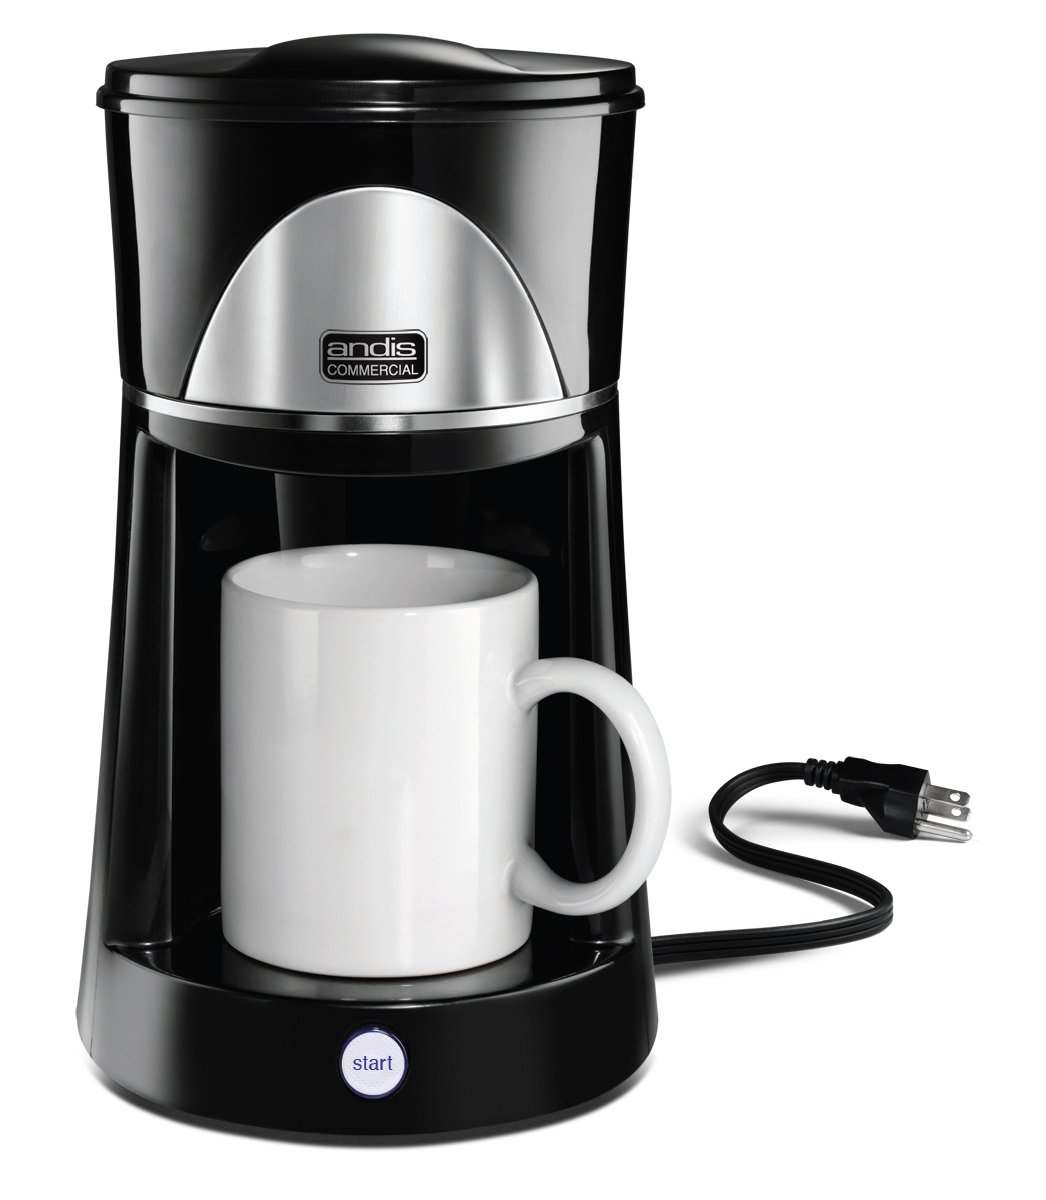 Andis 12 Oz 1 Cup Coffee Maker 60980 Black Walmartcom